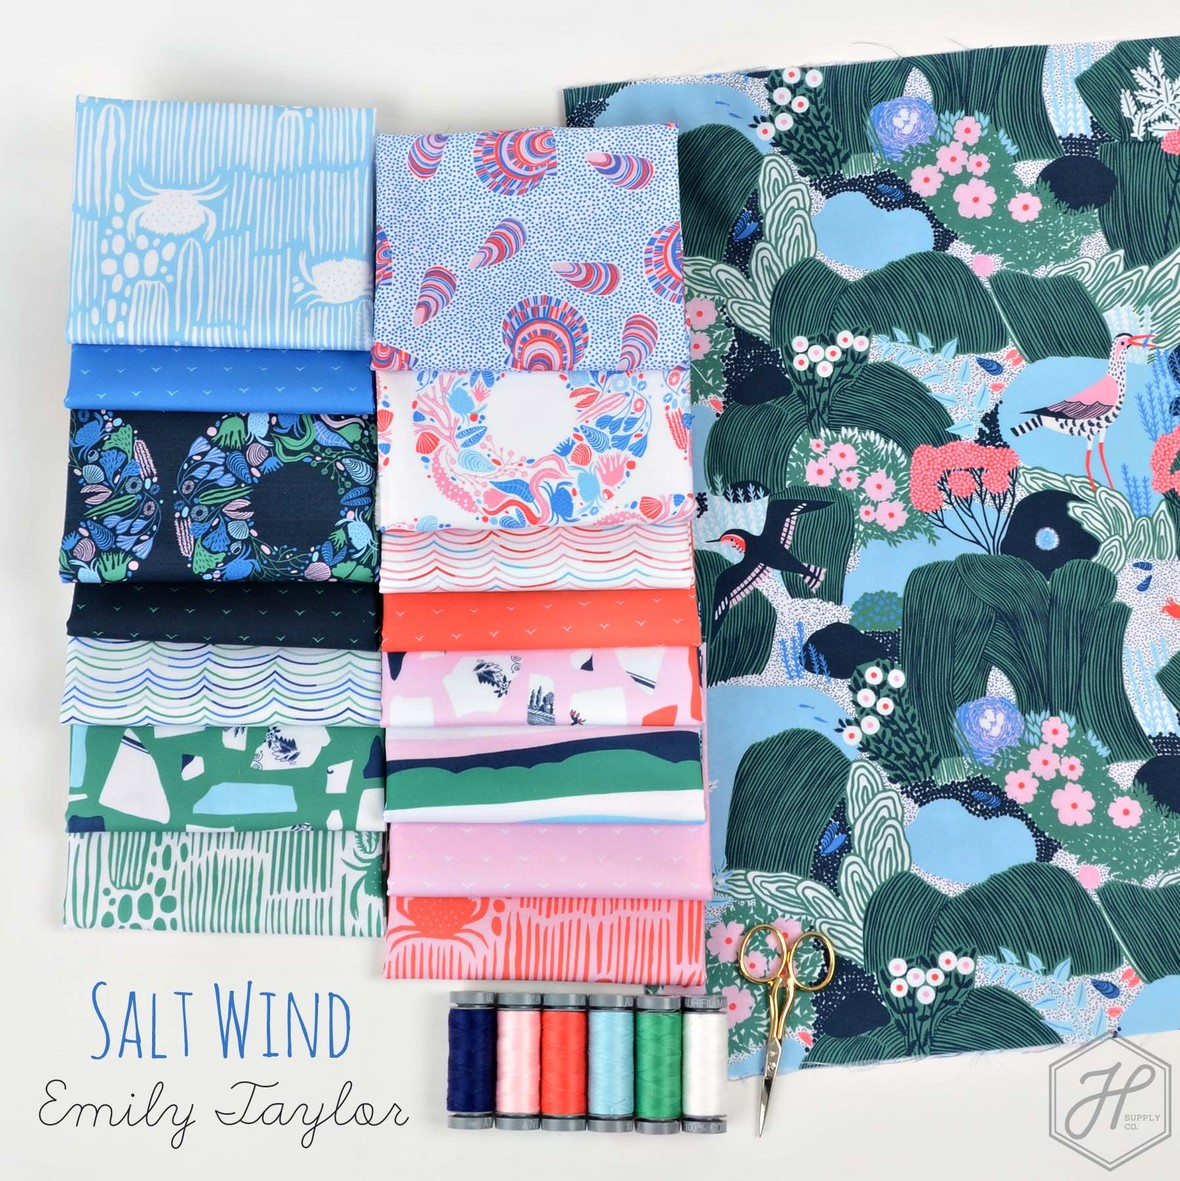 Salt Wind Fabric from Emily Taylor and Figo at Hawthorne Supply Co